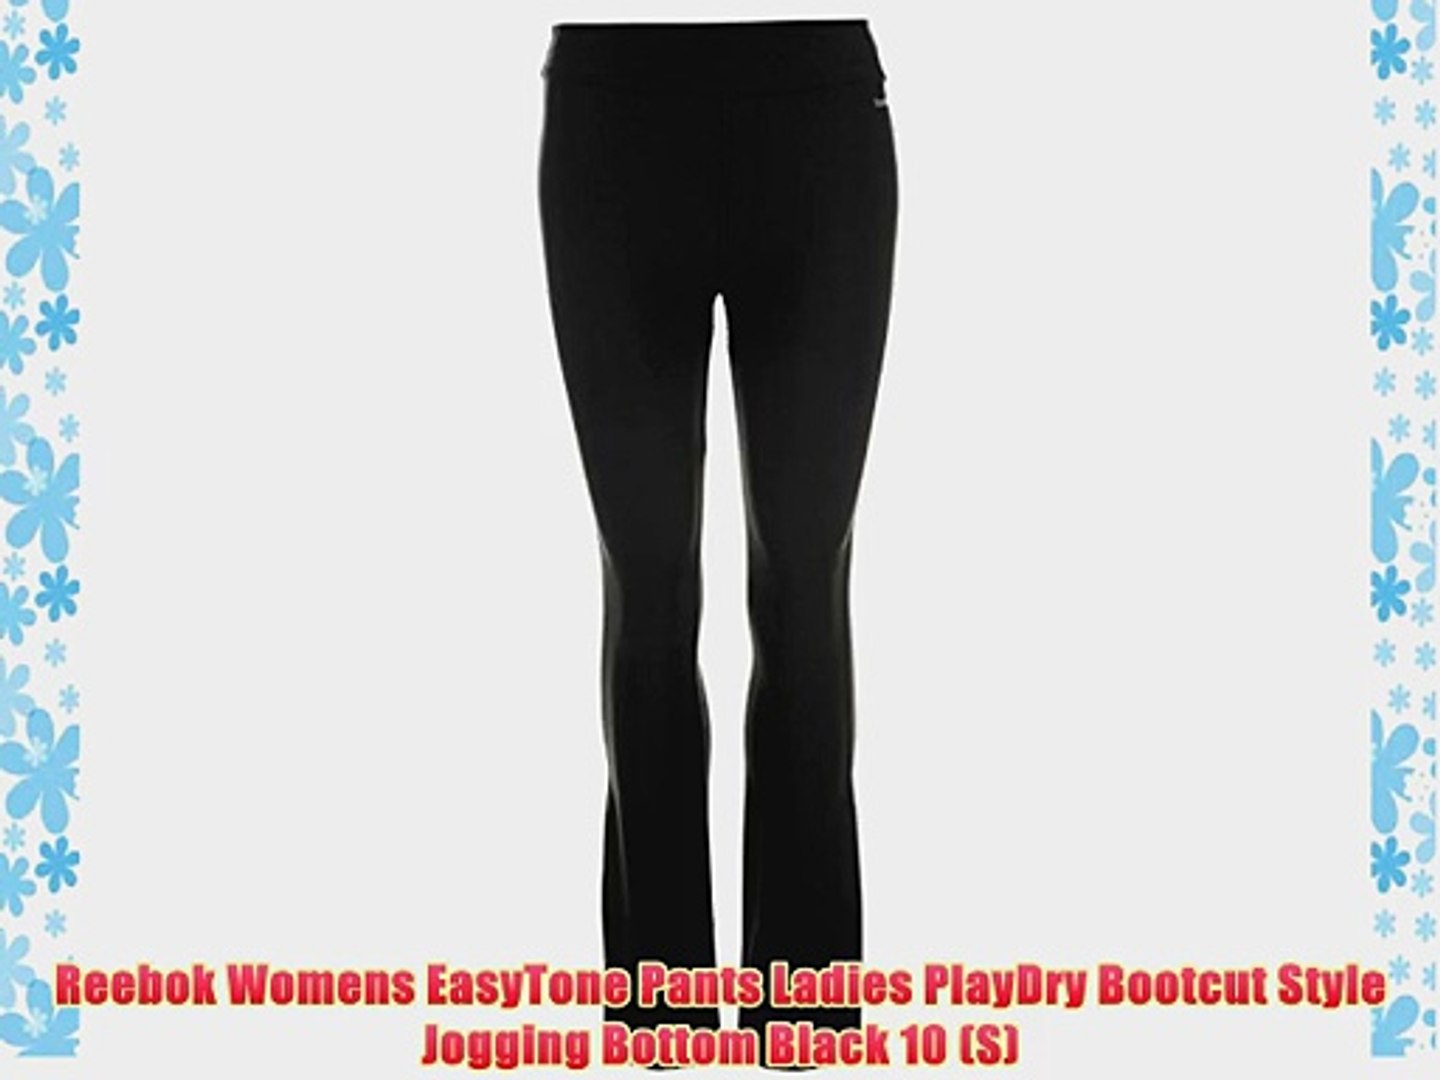 meticulous dyeing processes hoard as a rare commodity stylish design Reebok Womens EasyTone Pants Ladies PlayDry Bootcut Style Jogging Bottom  Black 10 (S)